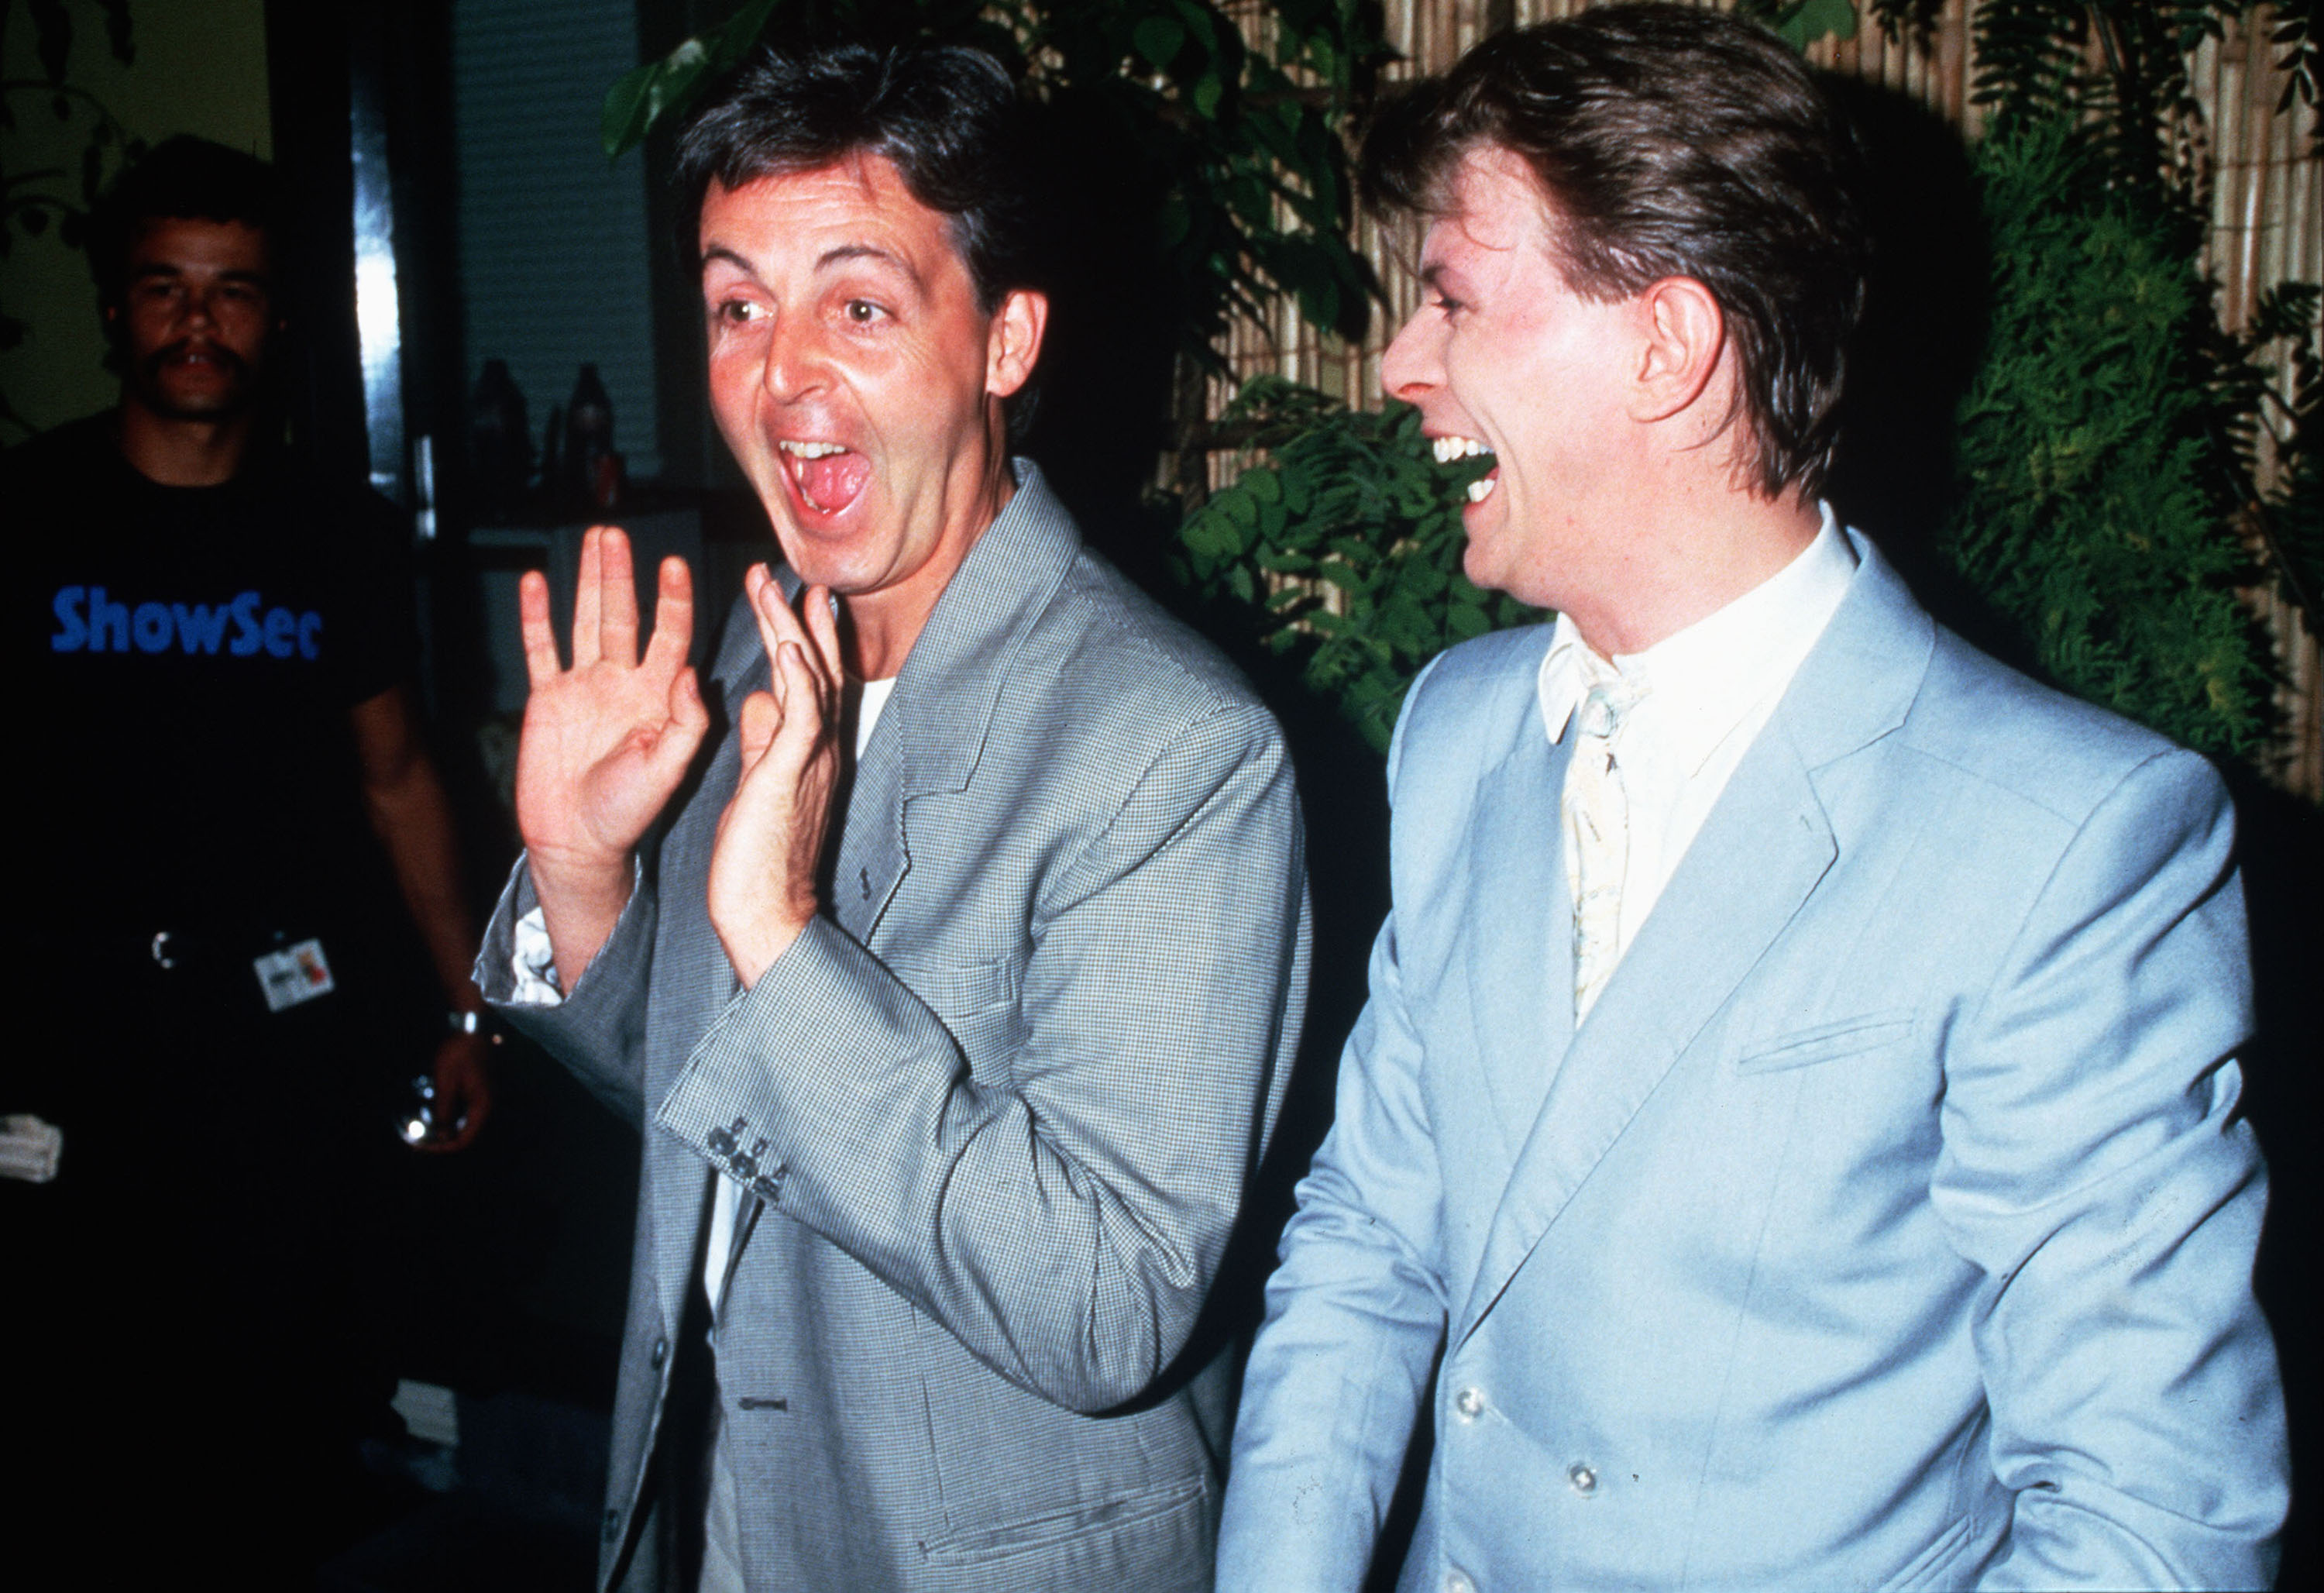 Paul McCartney and David Bowie backstage at Live Aid on July 13, 1985 in London.